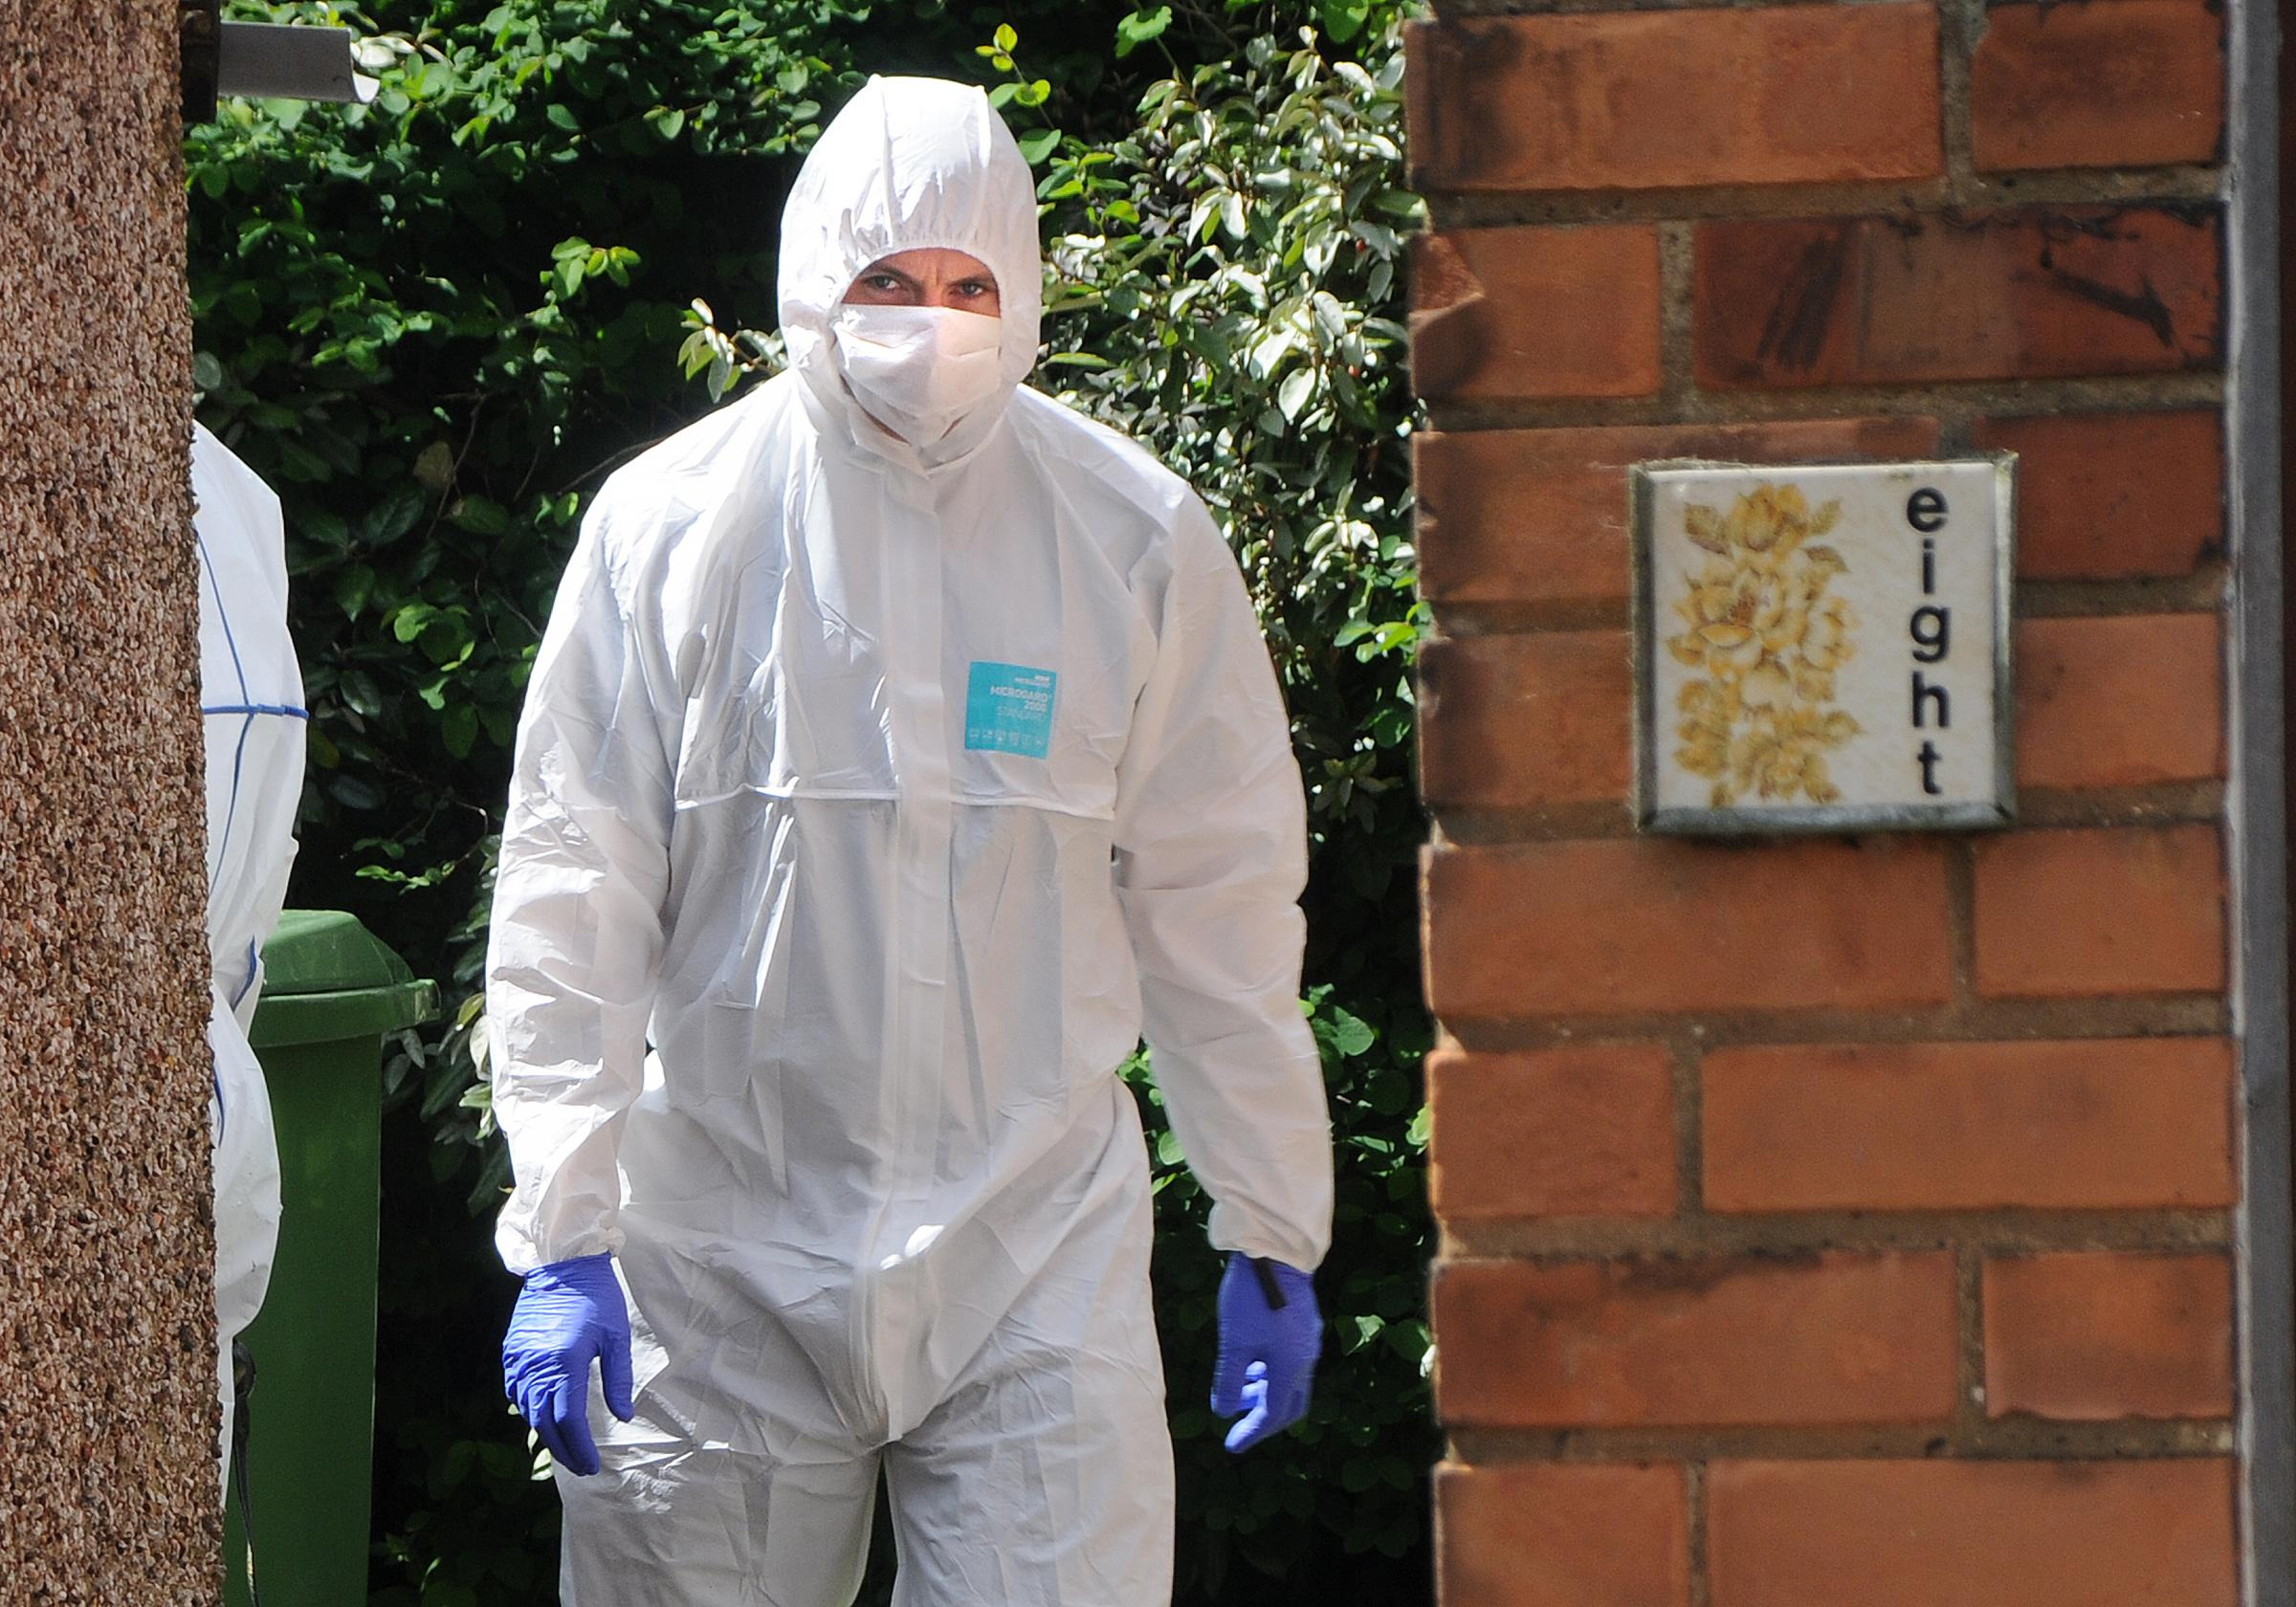 Man arrested on suspicion of Claudia Lawrence murder - understood to be local man Michael Snelling, 59 - remains in custody